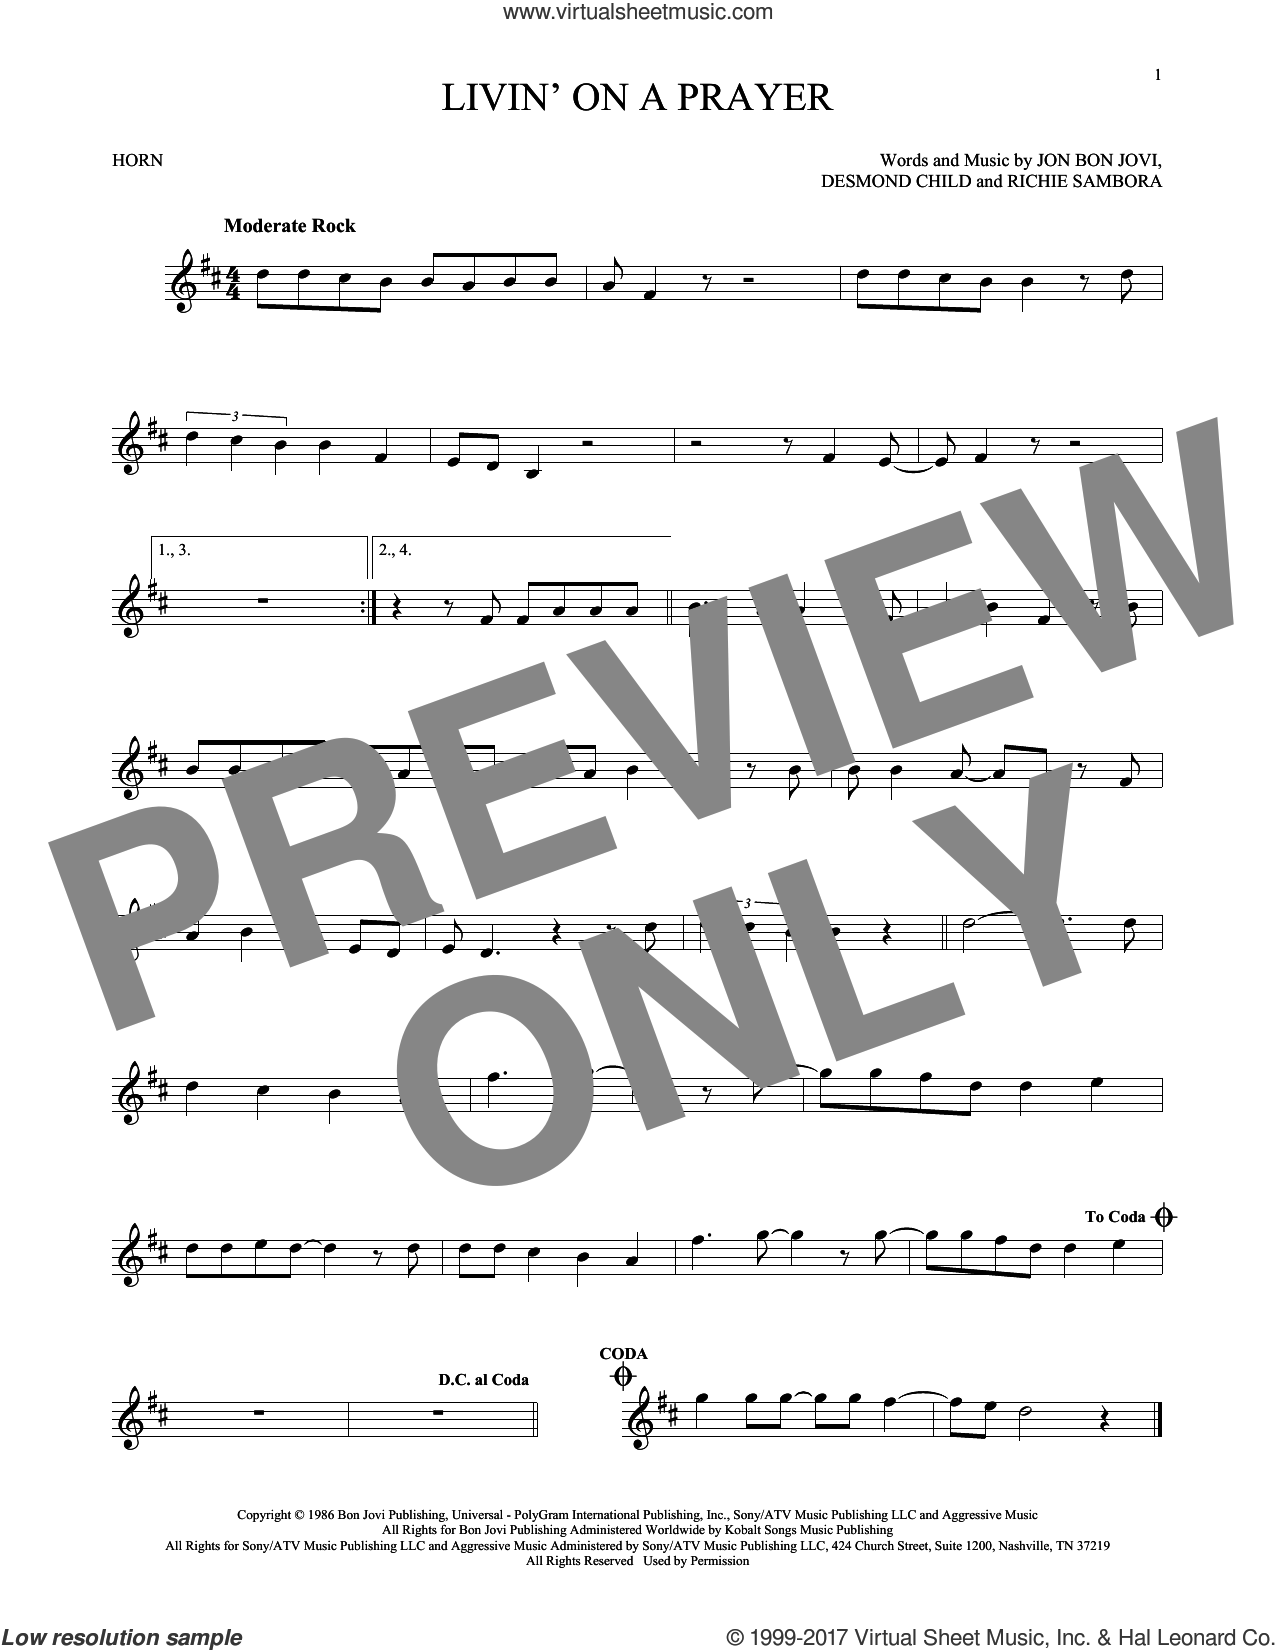 Livin' On A Prayer sheet music for horn solo by Bon Jovi, Desmond Child and Richie Sambora, intermediate. Score Image Preview.